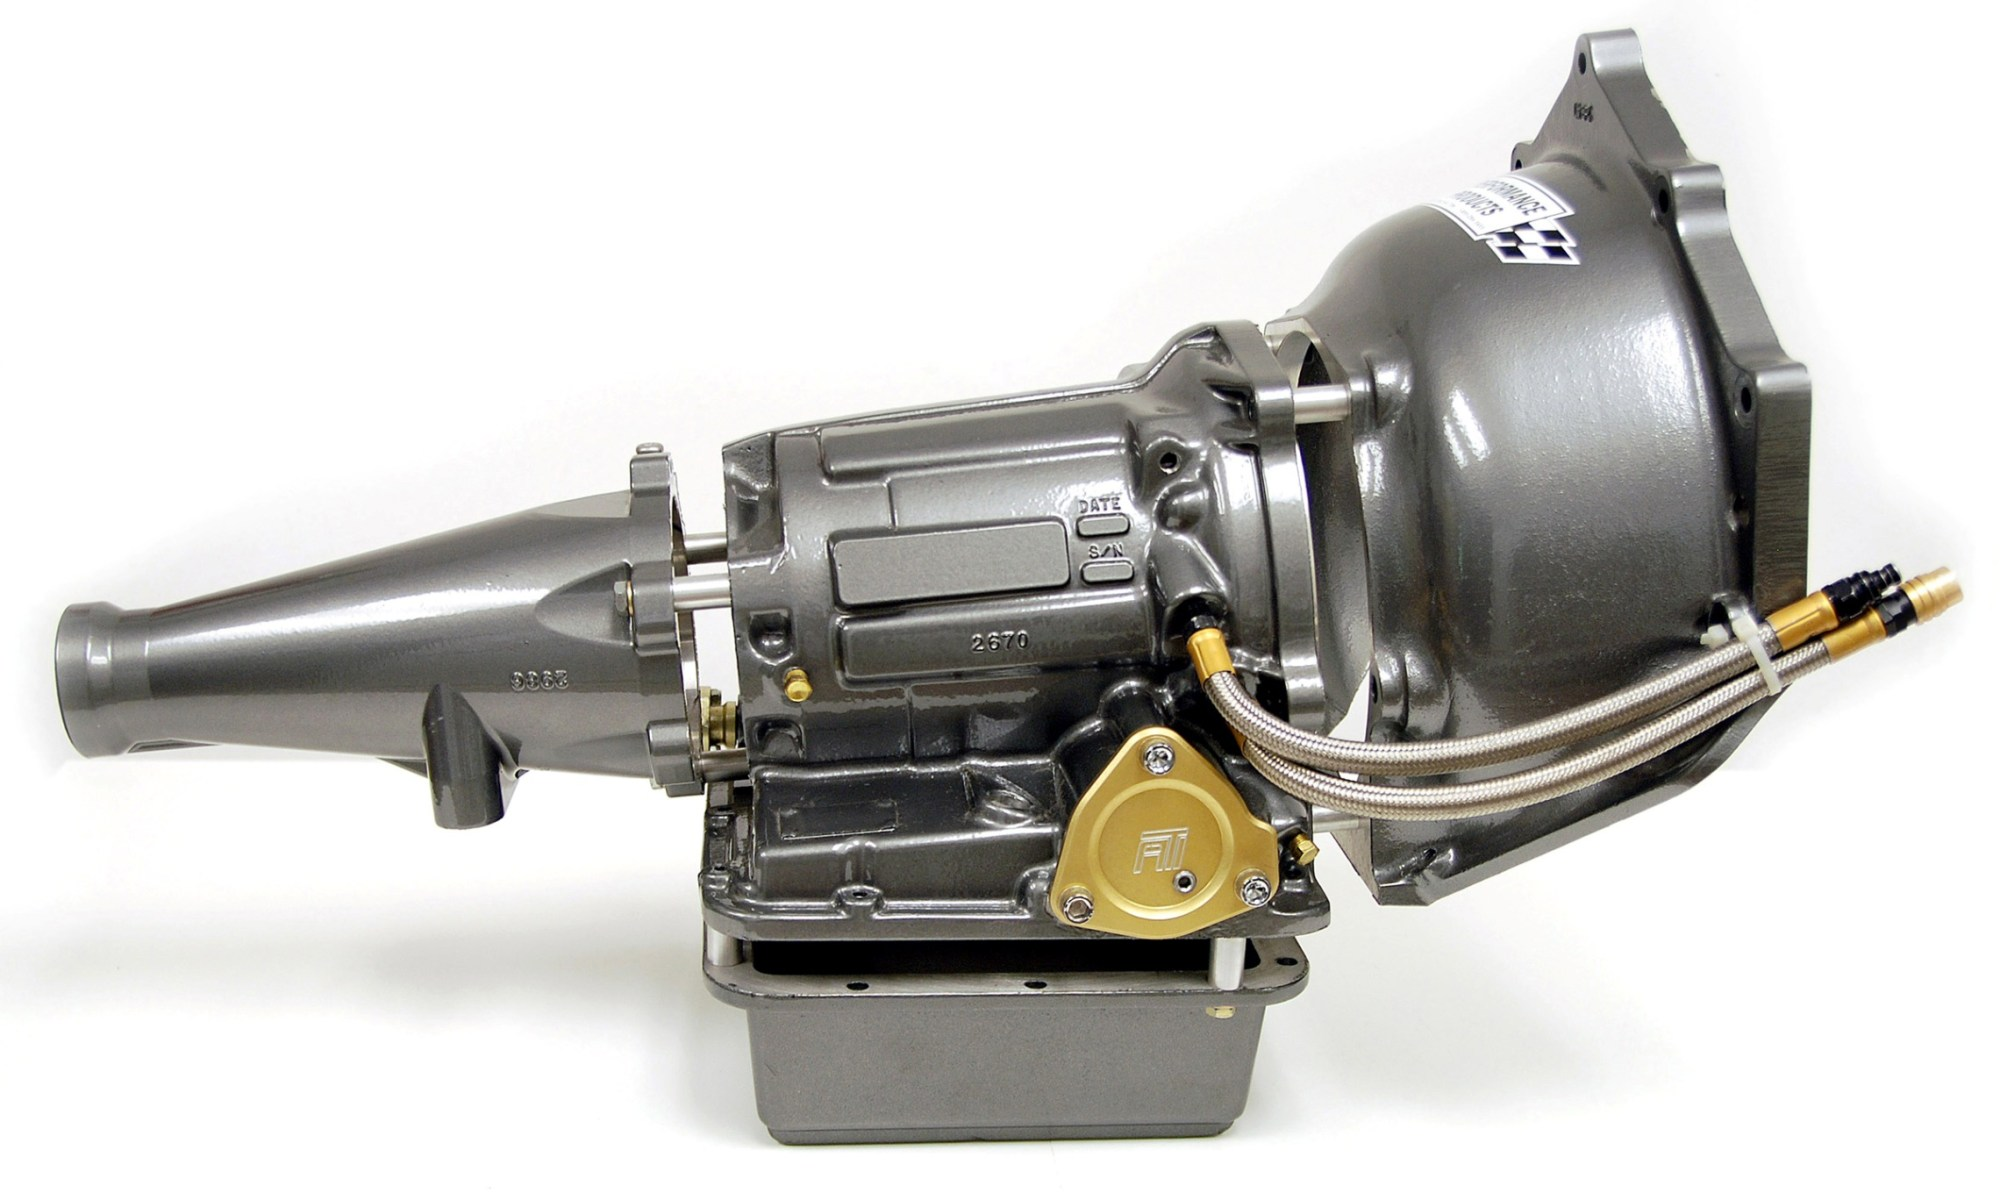 hight resolution of the superglide4 starts with a 100 new cast aluminum supercase that is comprised of four parts the sfi approved supercase is manufactured from 356t6